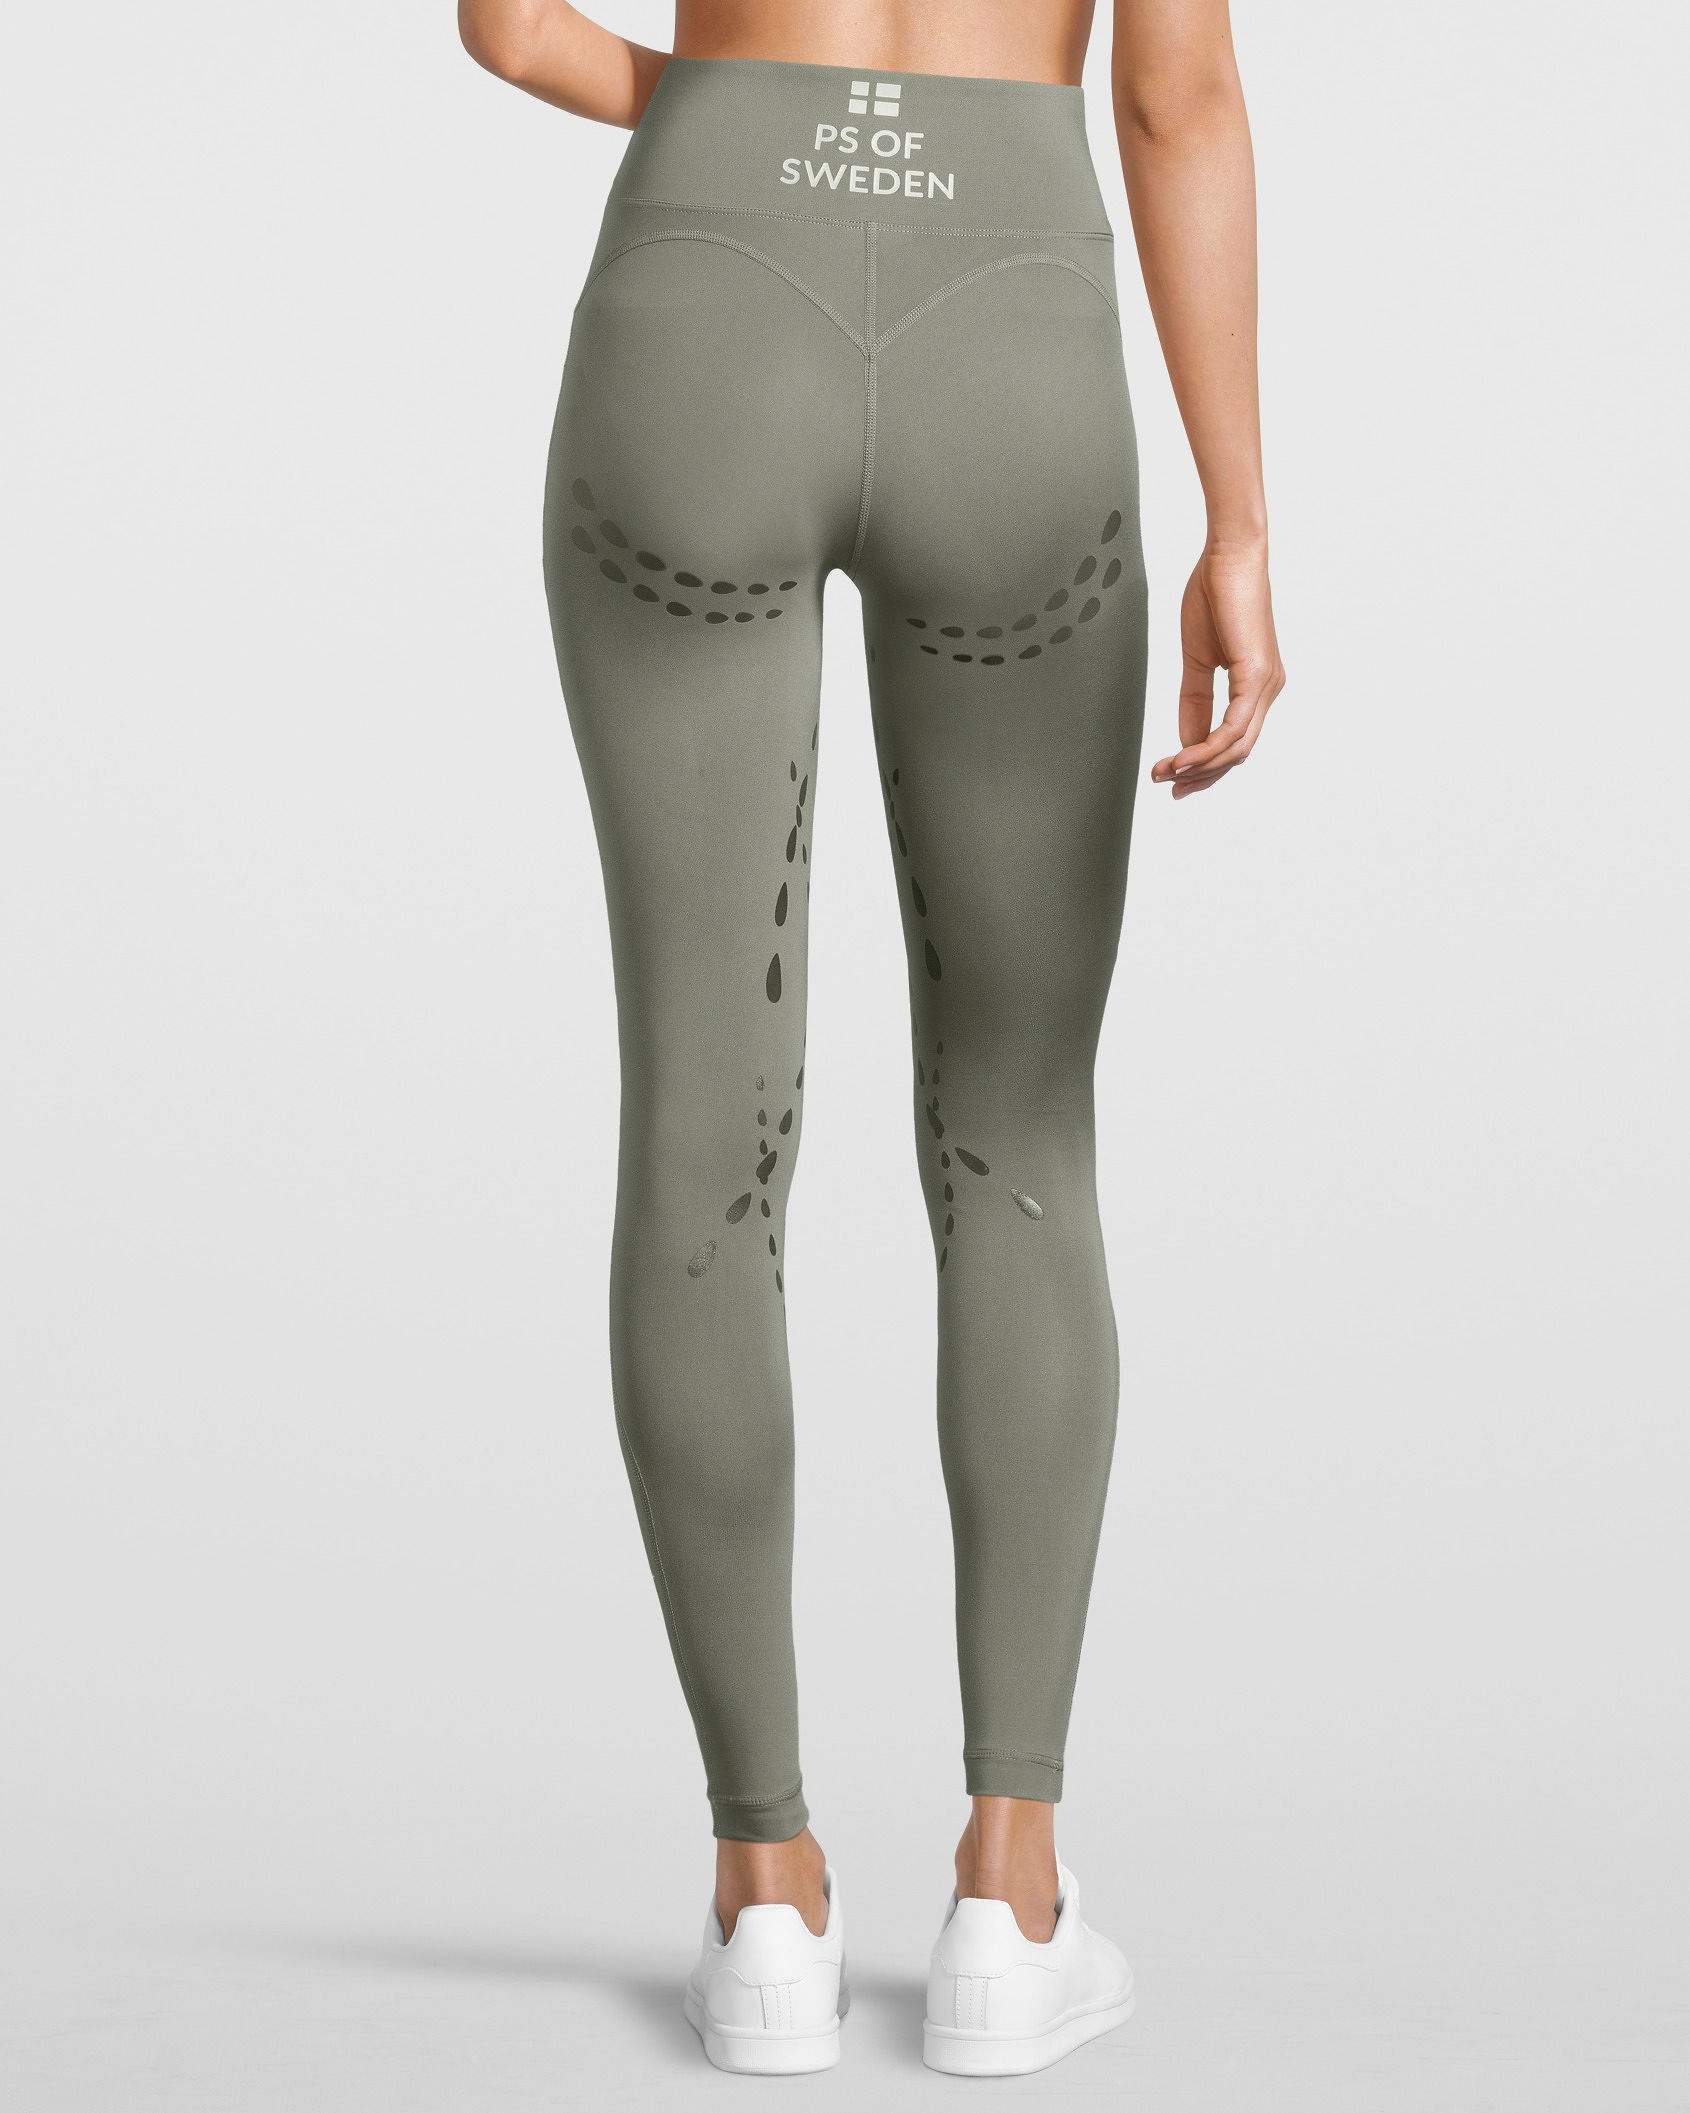 PS of Sweden Reithose Reitleggings Taylor in Thyme